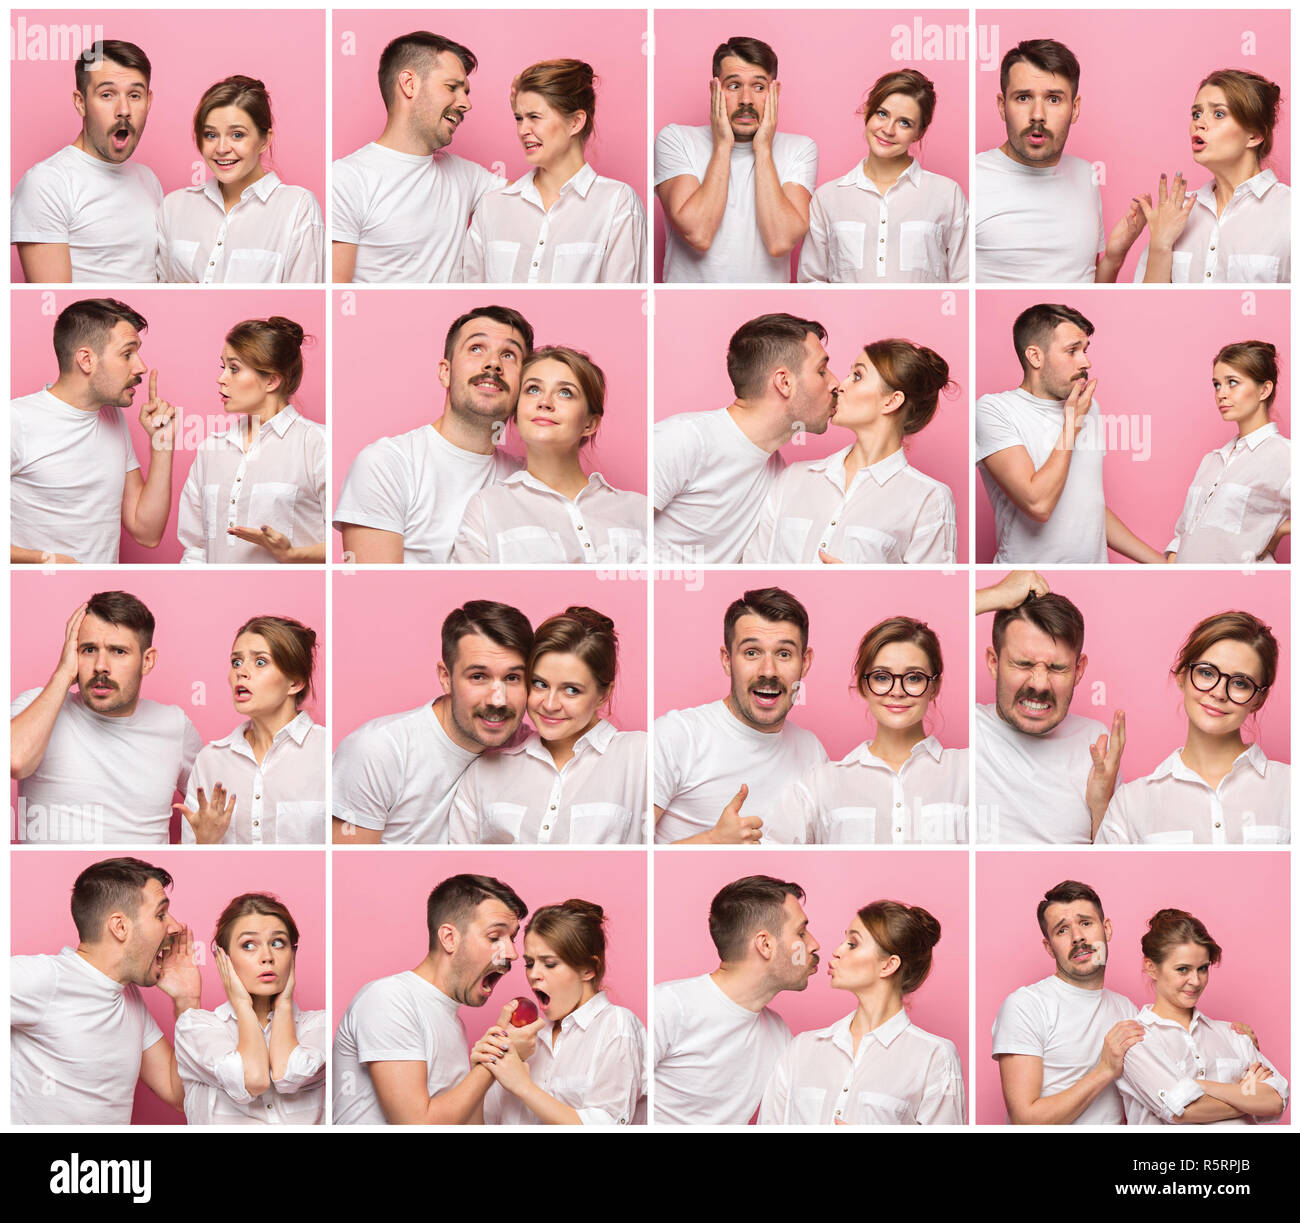 The collage from images of young man and woman on pink background - Stock Image